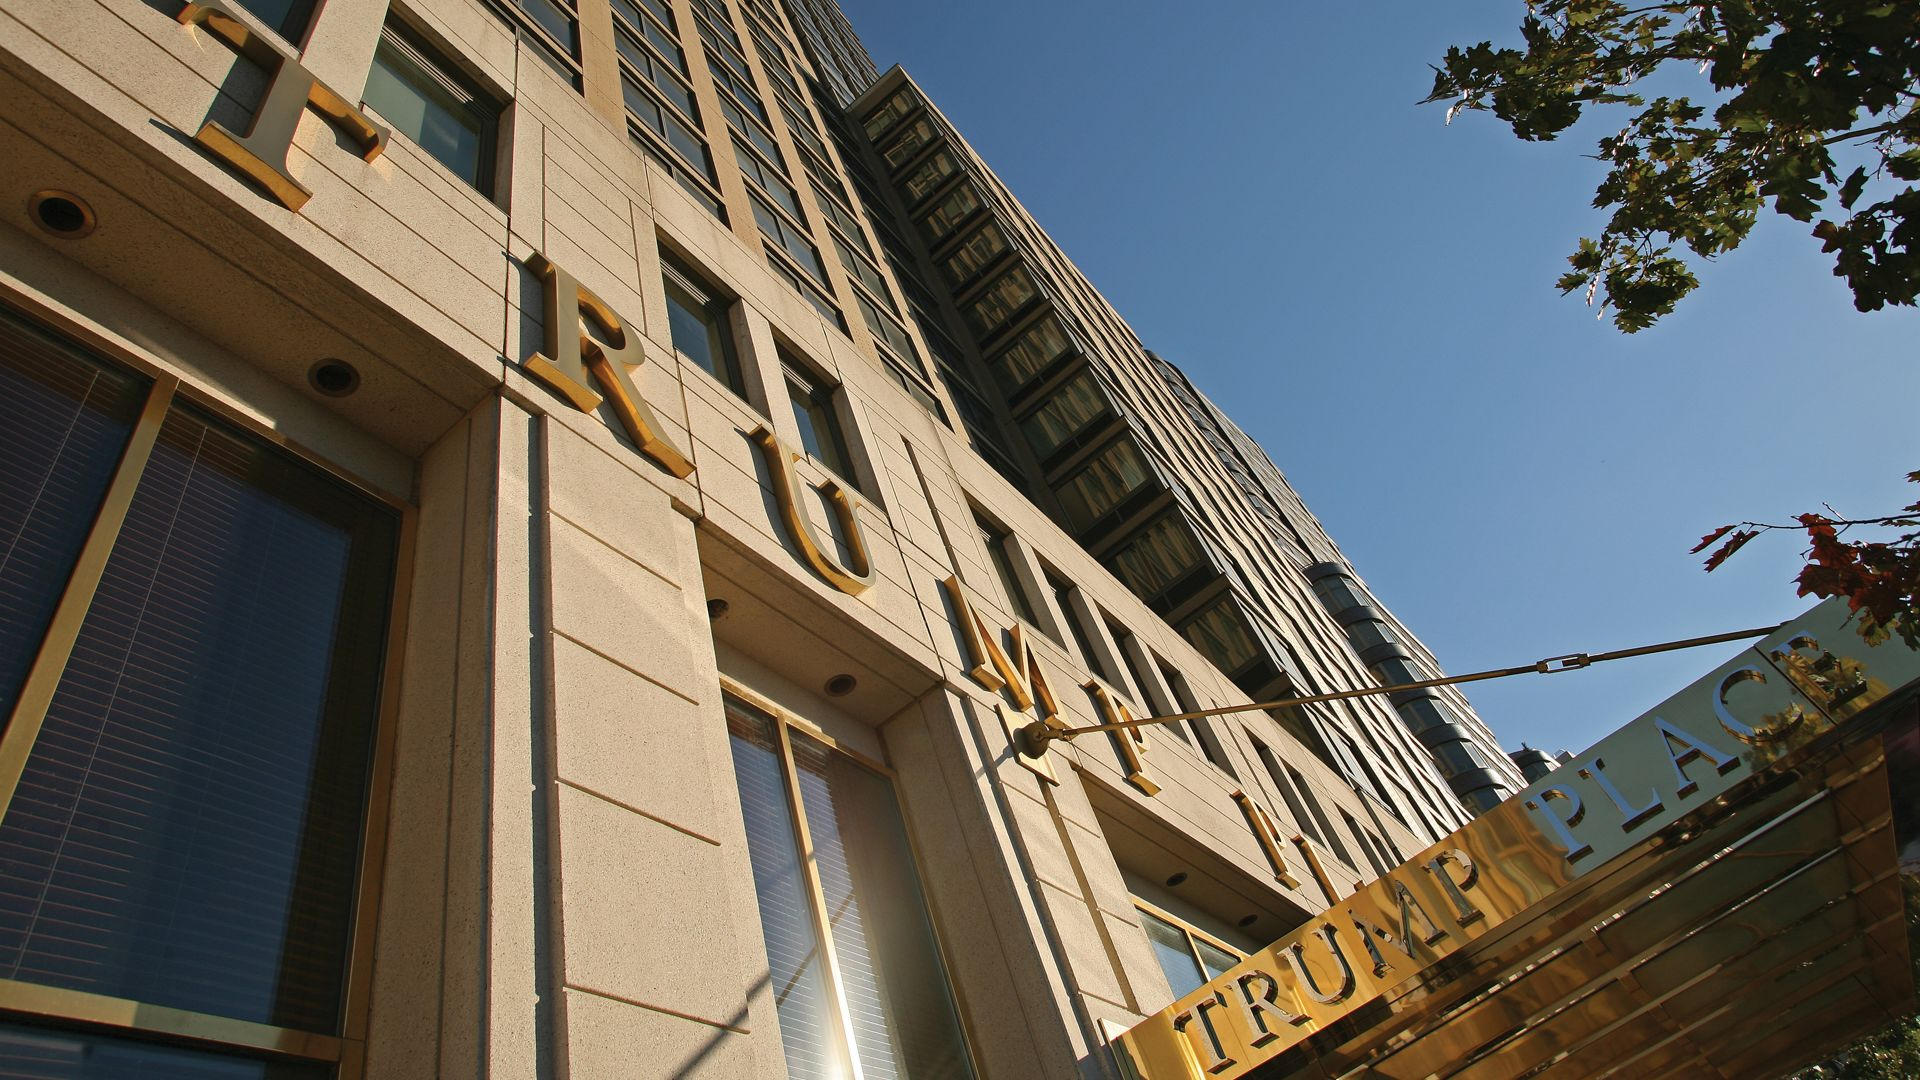 Trump Place 160 Riverside Blvd Apartments - Exterior